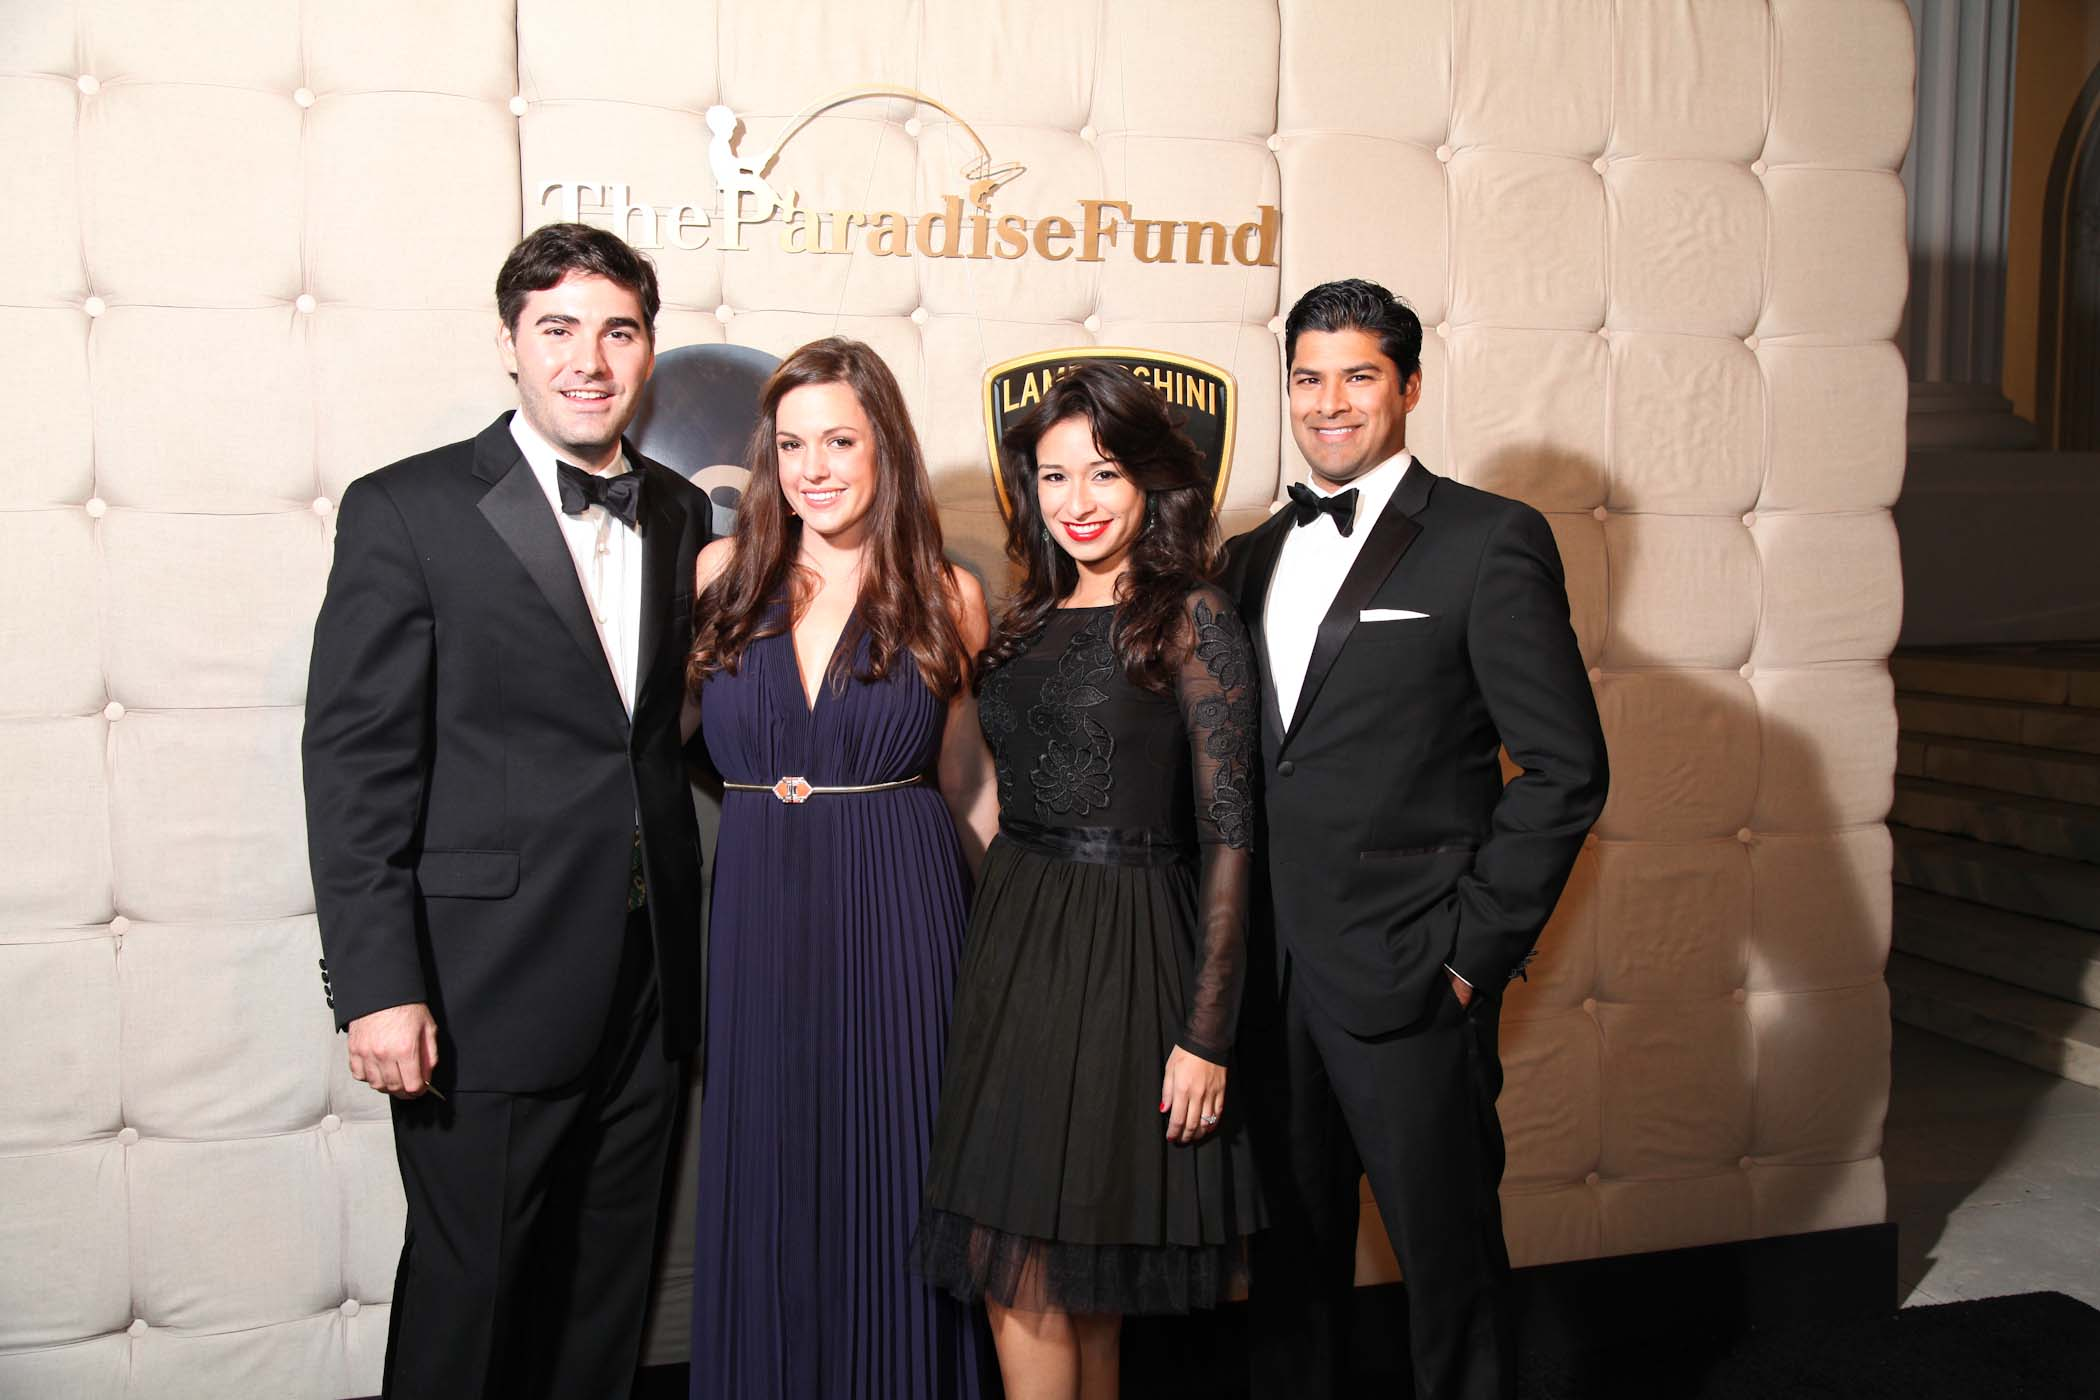 Nick Kassatly, Stacy Nichols with Carla Shah and Punit Shah